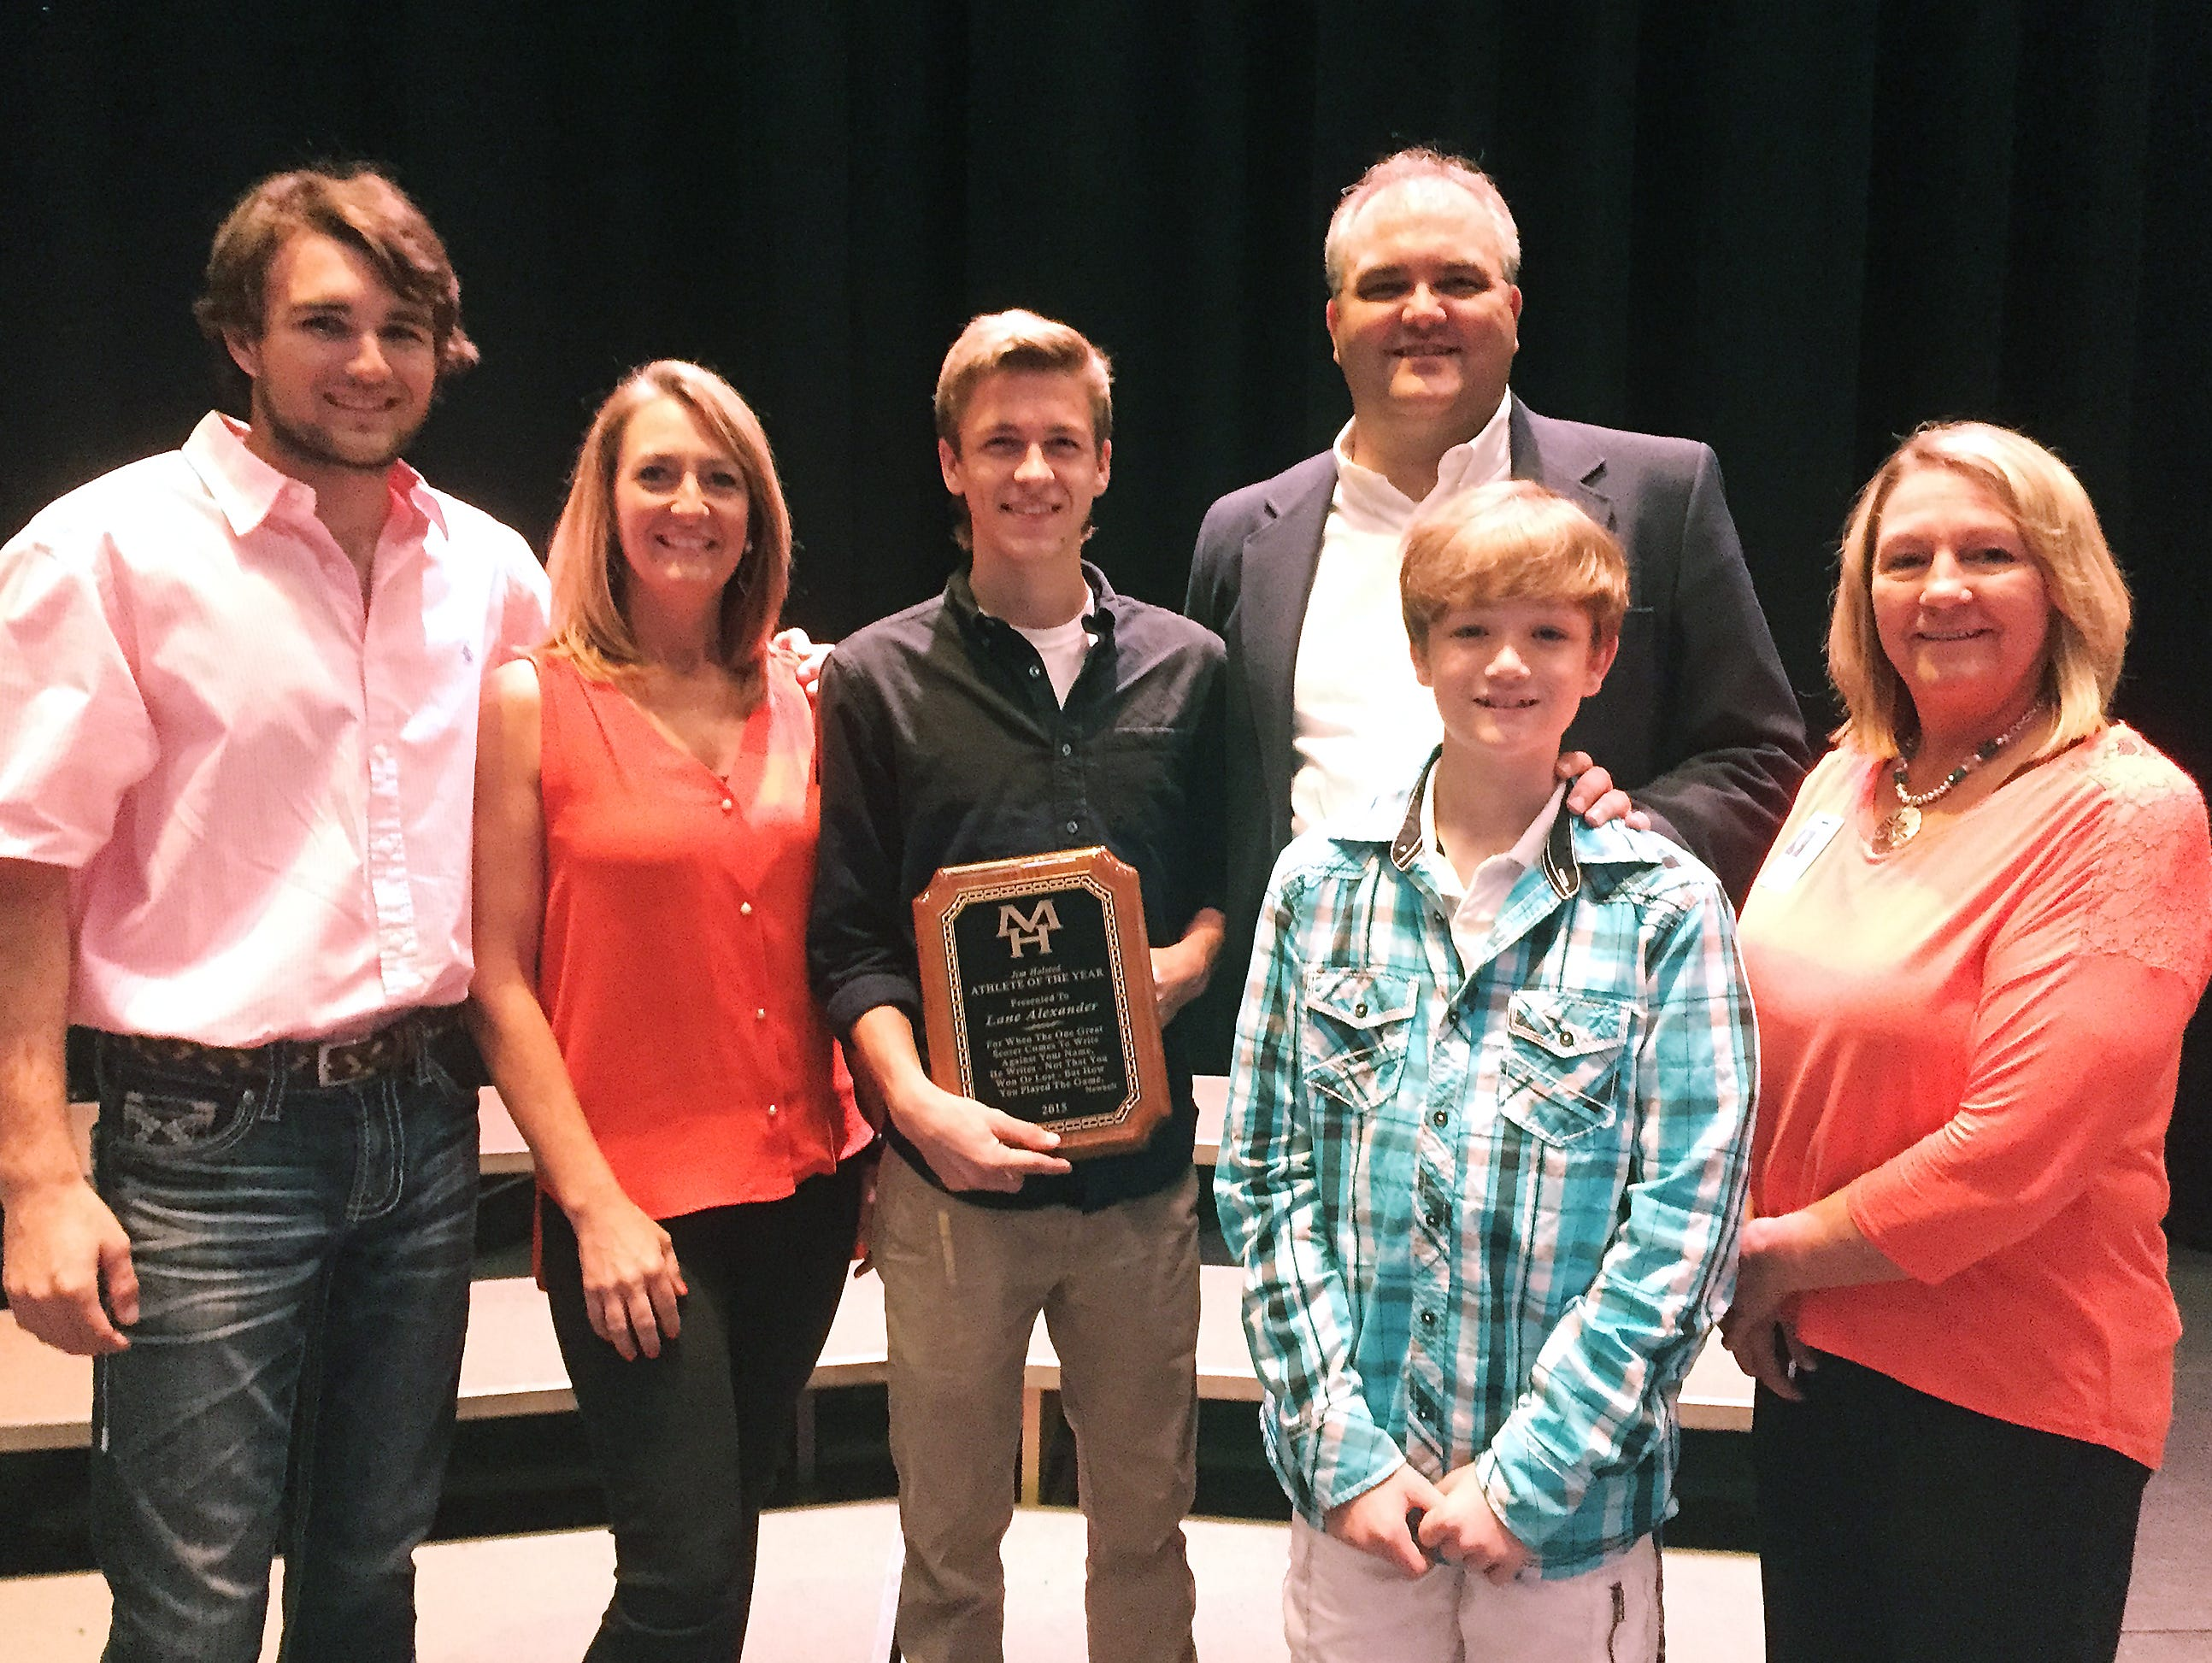 Lane Alexander recently was named the Jim Holsted Athlete of the Year for Mountain Home High School. Shown with Alexander are members of Holsted's family: from left, Dalton Rebsamen, Susan Stockton, Alexander, Mike Stockton, Lawson Stockton and MHHS athletics director Janet Wood.